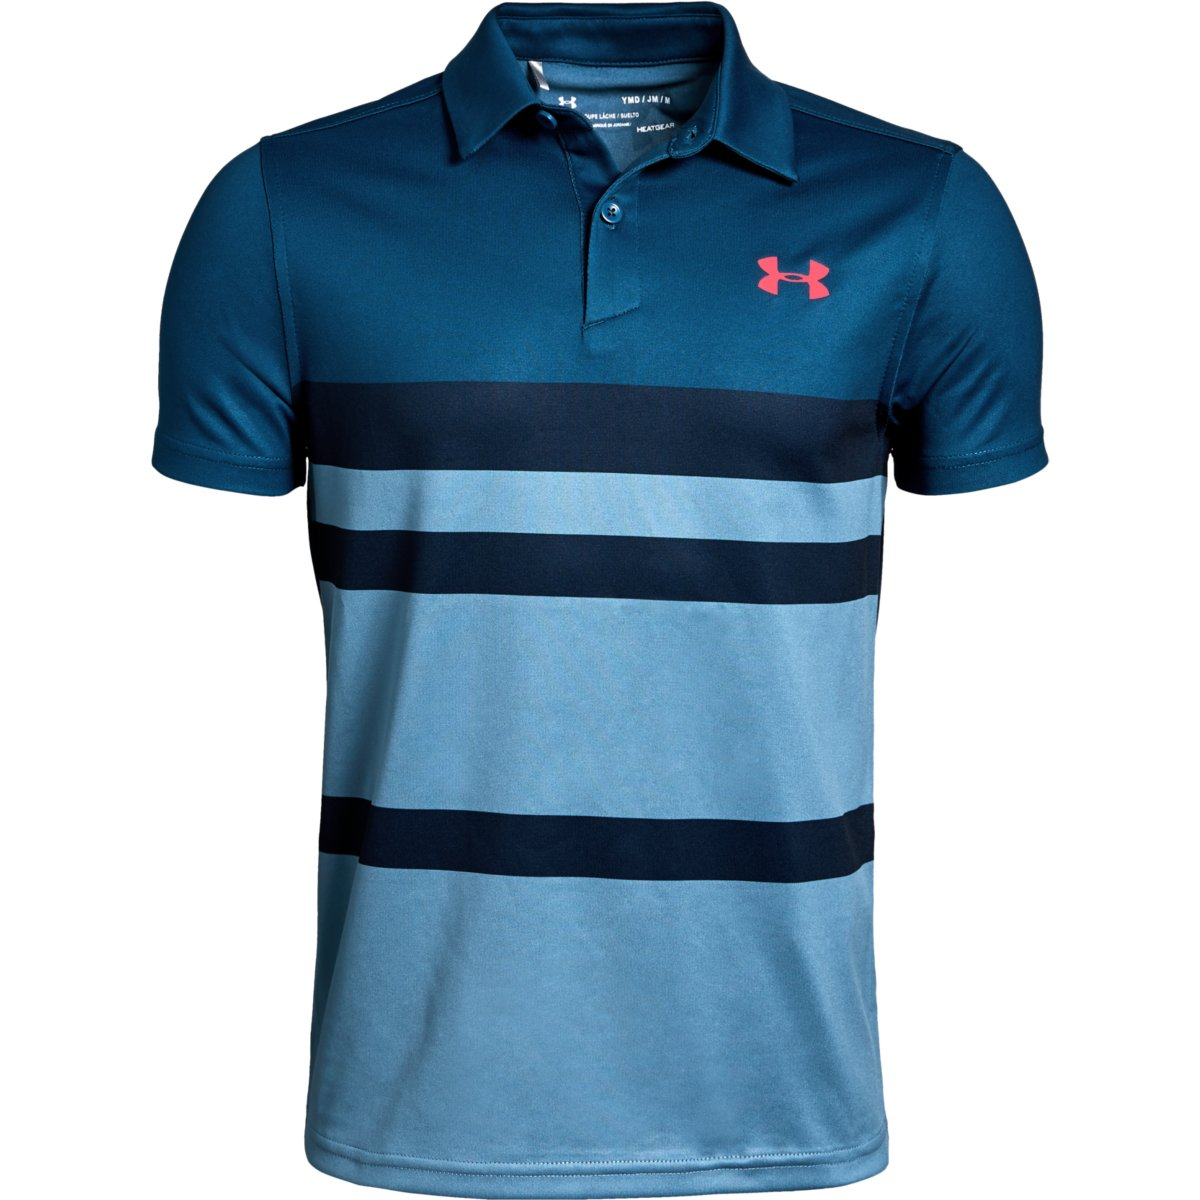 Under Armour Tour Tips Engineered Polo Petrol Blue - YXS